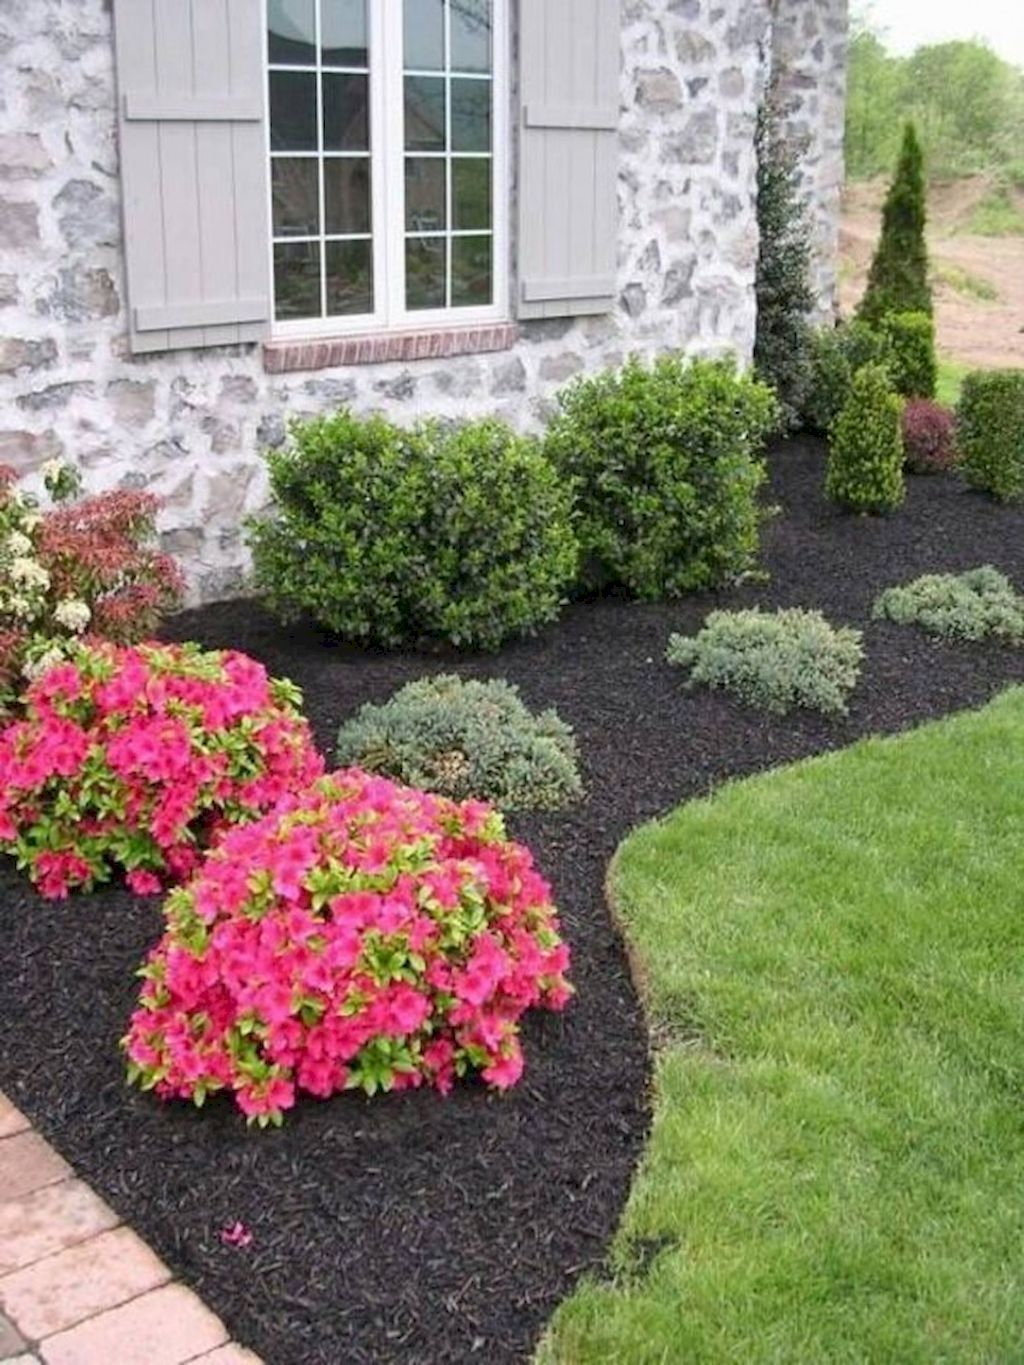 Fabulous Front Yard Lanscaping Ideas On A Budget 26 Outdoor Landscaping Yard Landscaping